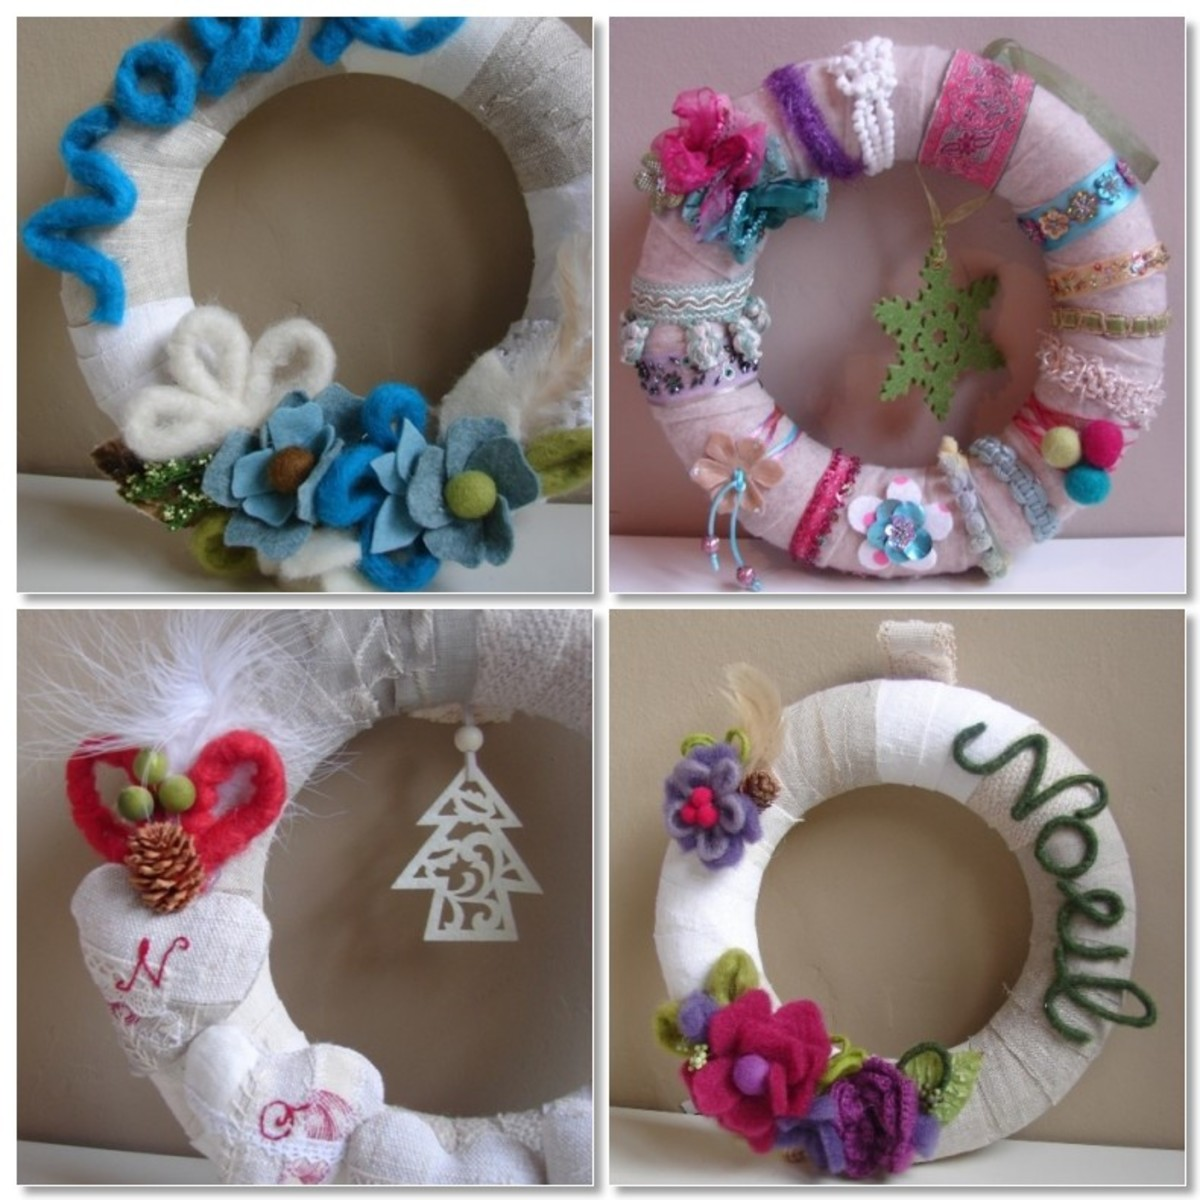 2256646 - Admirable christmas wreath decorating ideas to welcome the december ...